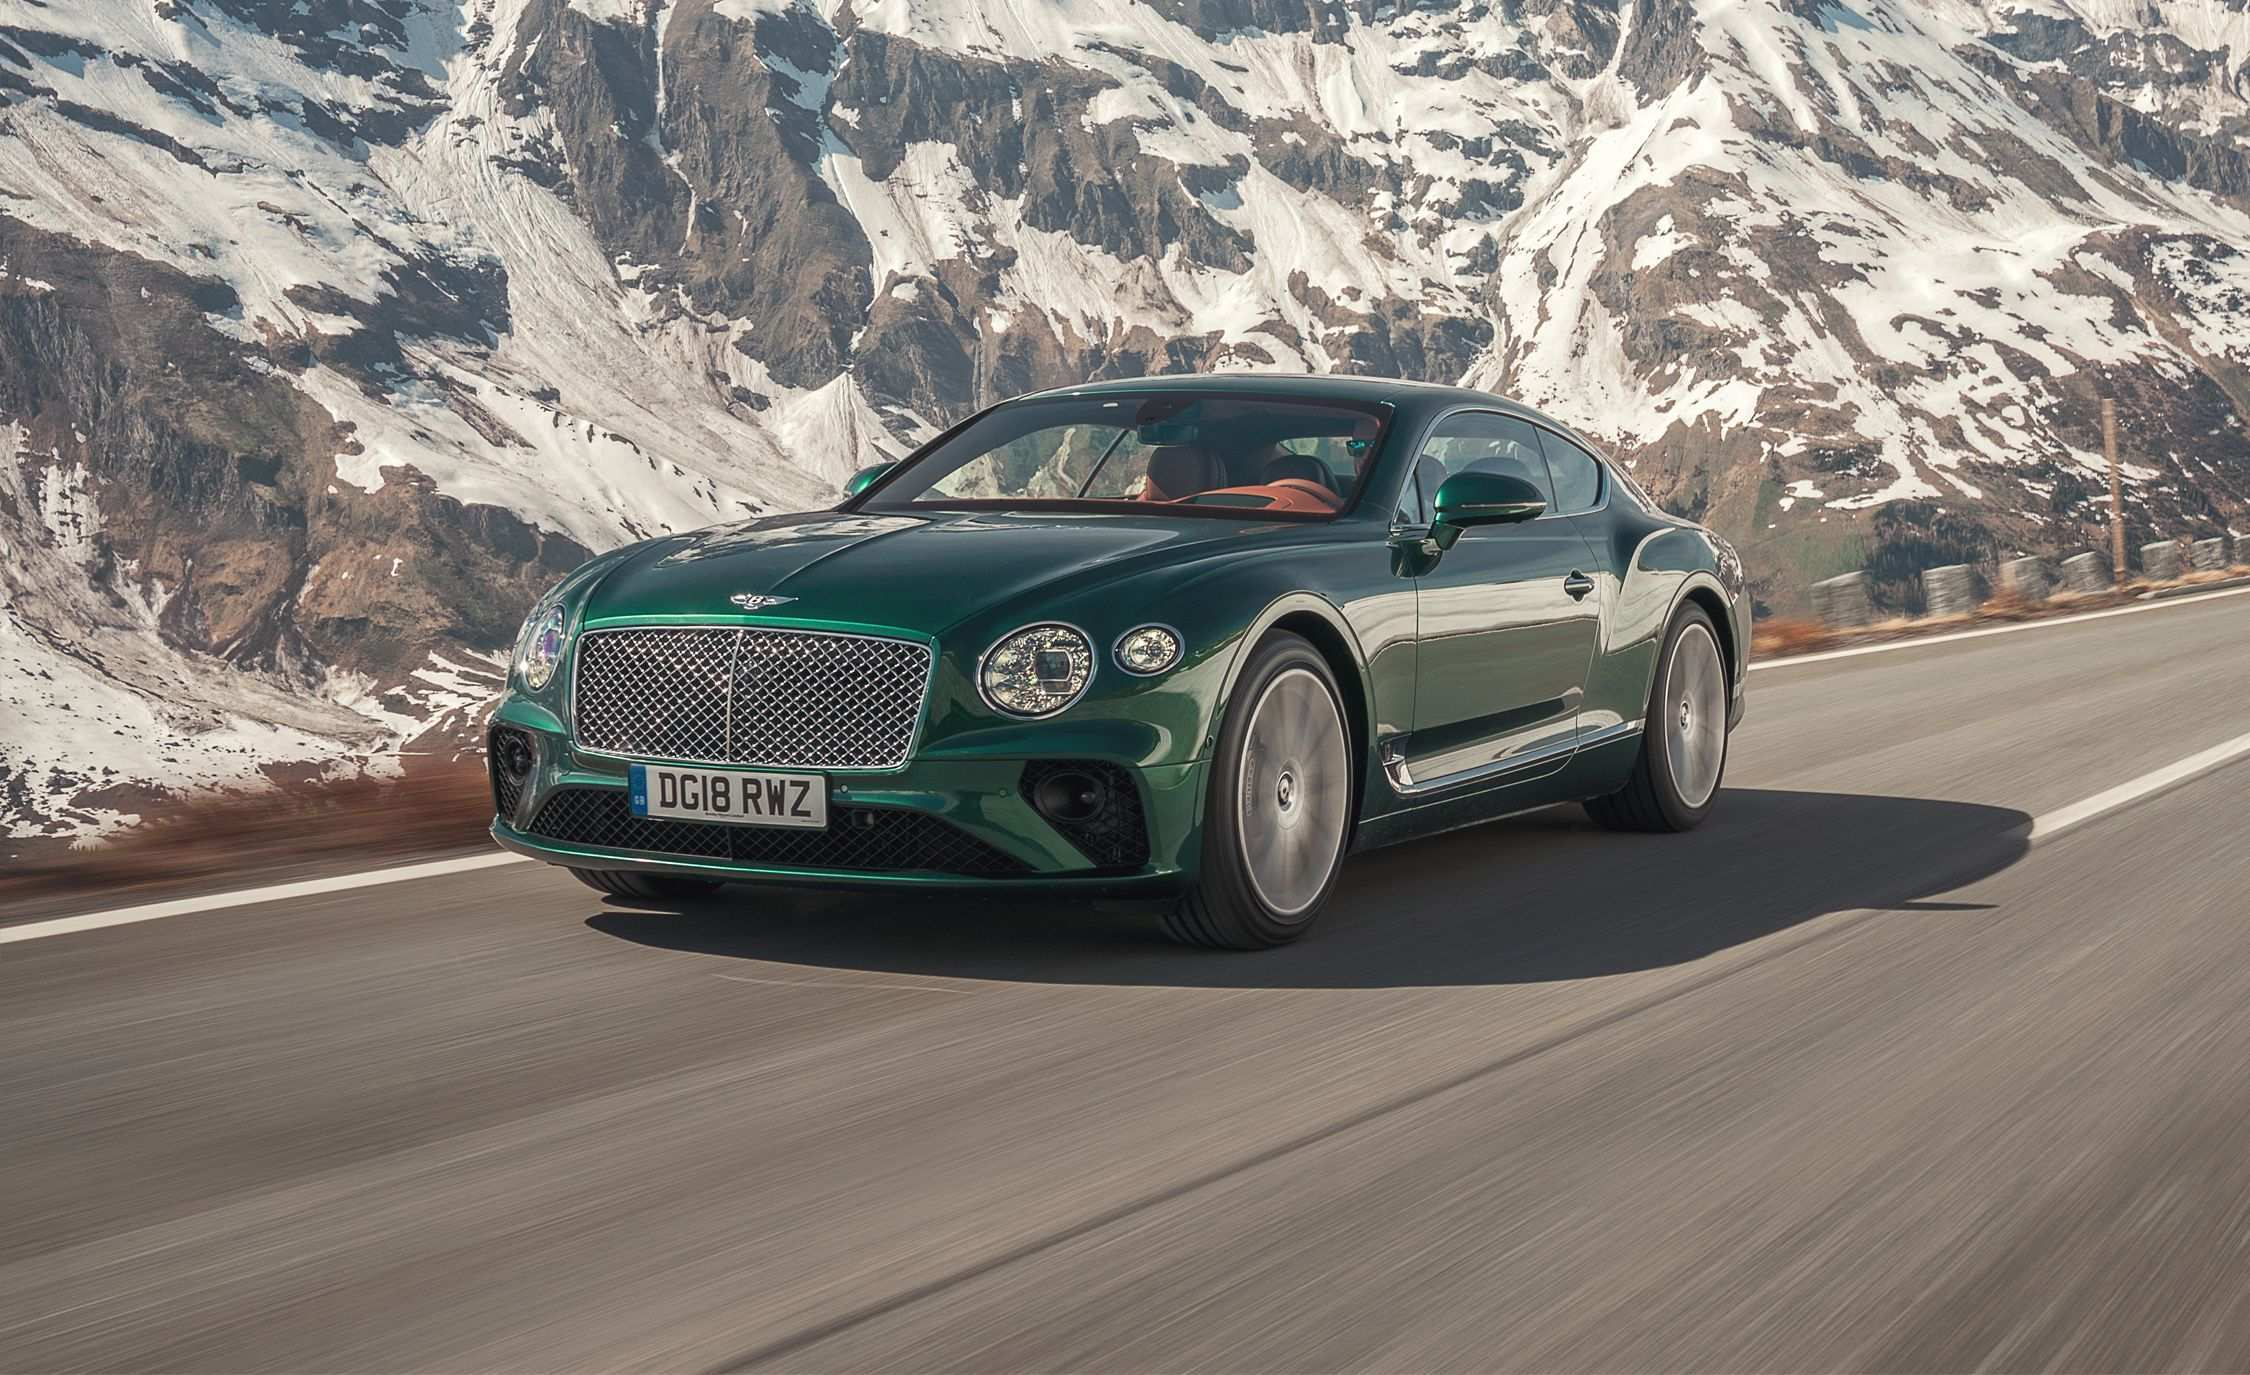 18 All New 2019 Bentley Continental Gt Release Date Ratings by 2019 Bentley Continental Gt Release Date